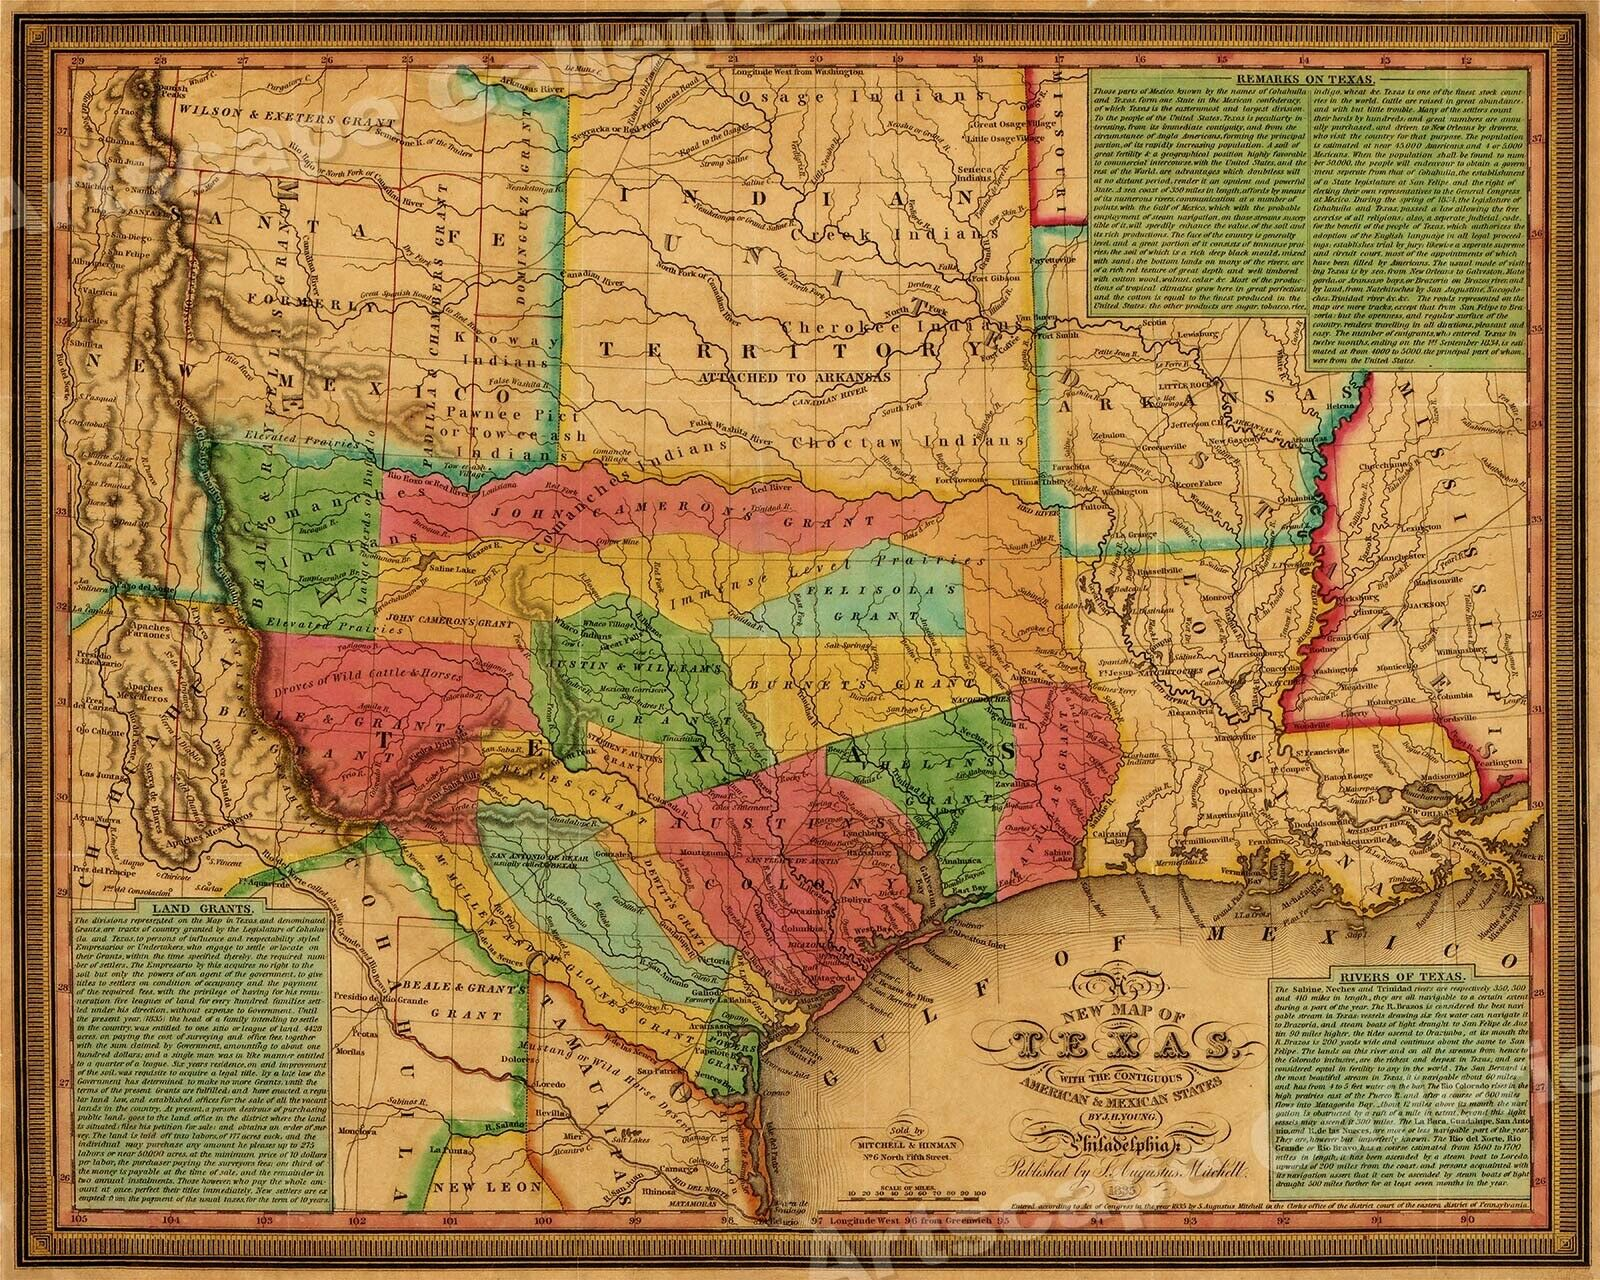 1835 TEXAS, INDIAN Territory & Mexican States Map Wall Map - 20x24 ...